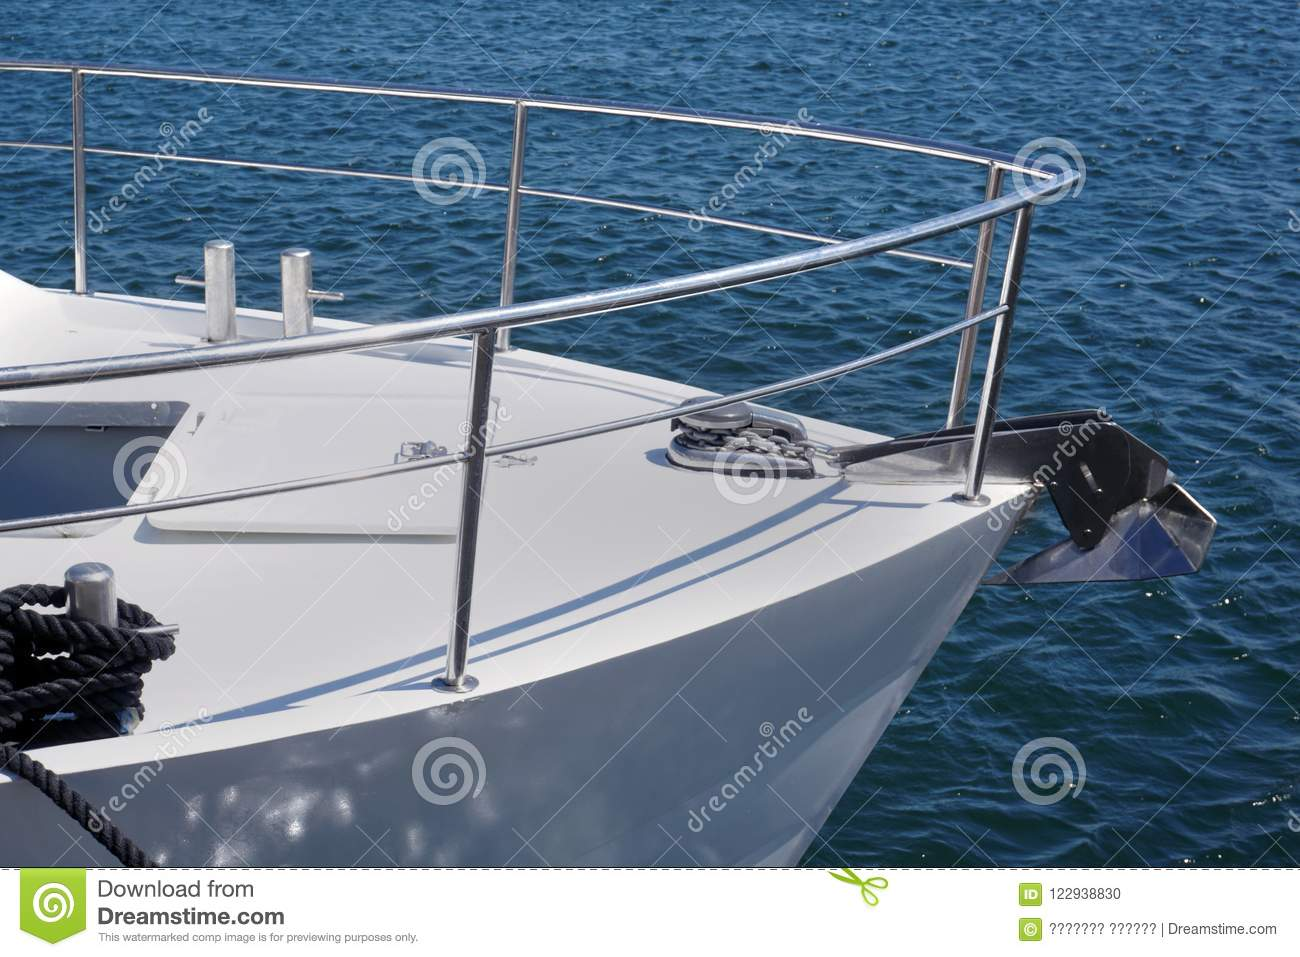 Bow Of A White Sailing Yacht Against The Blue Sea With